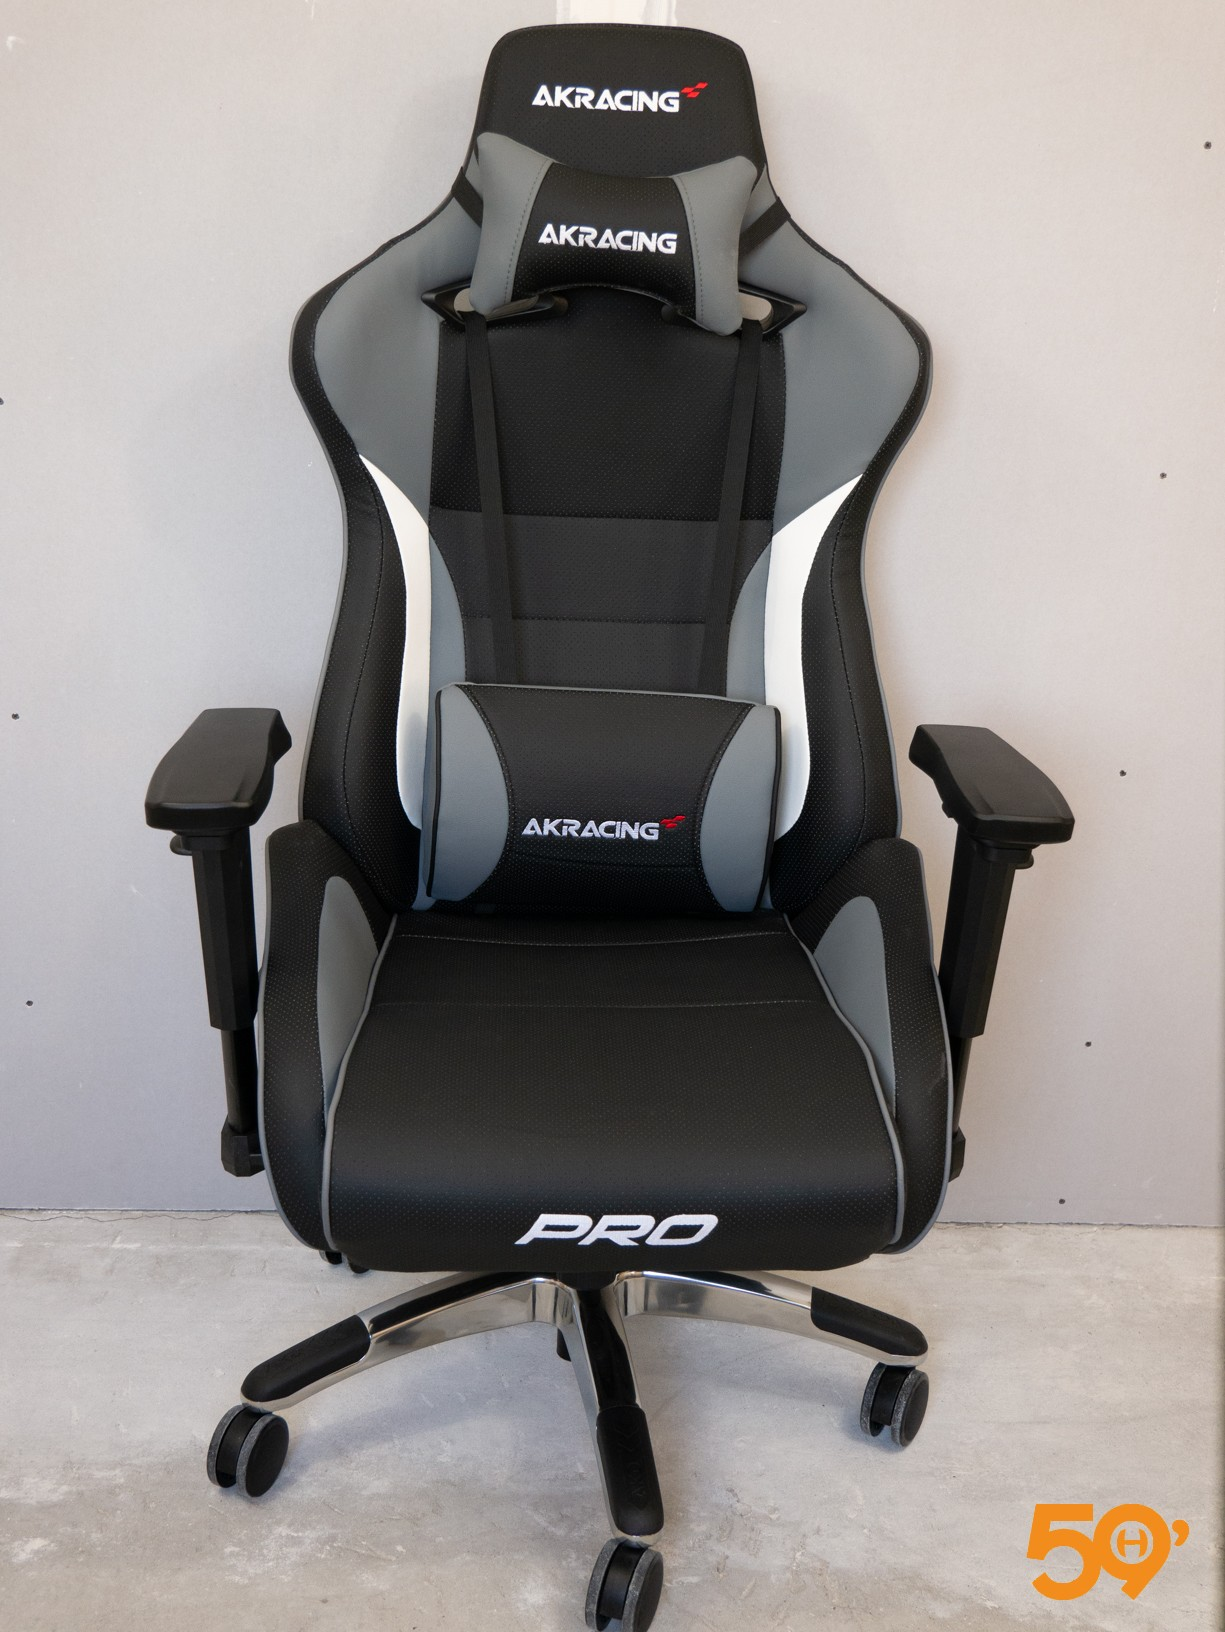 test chaise gameur akracing pro